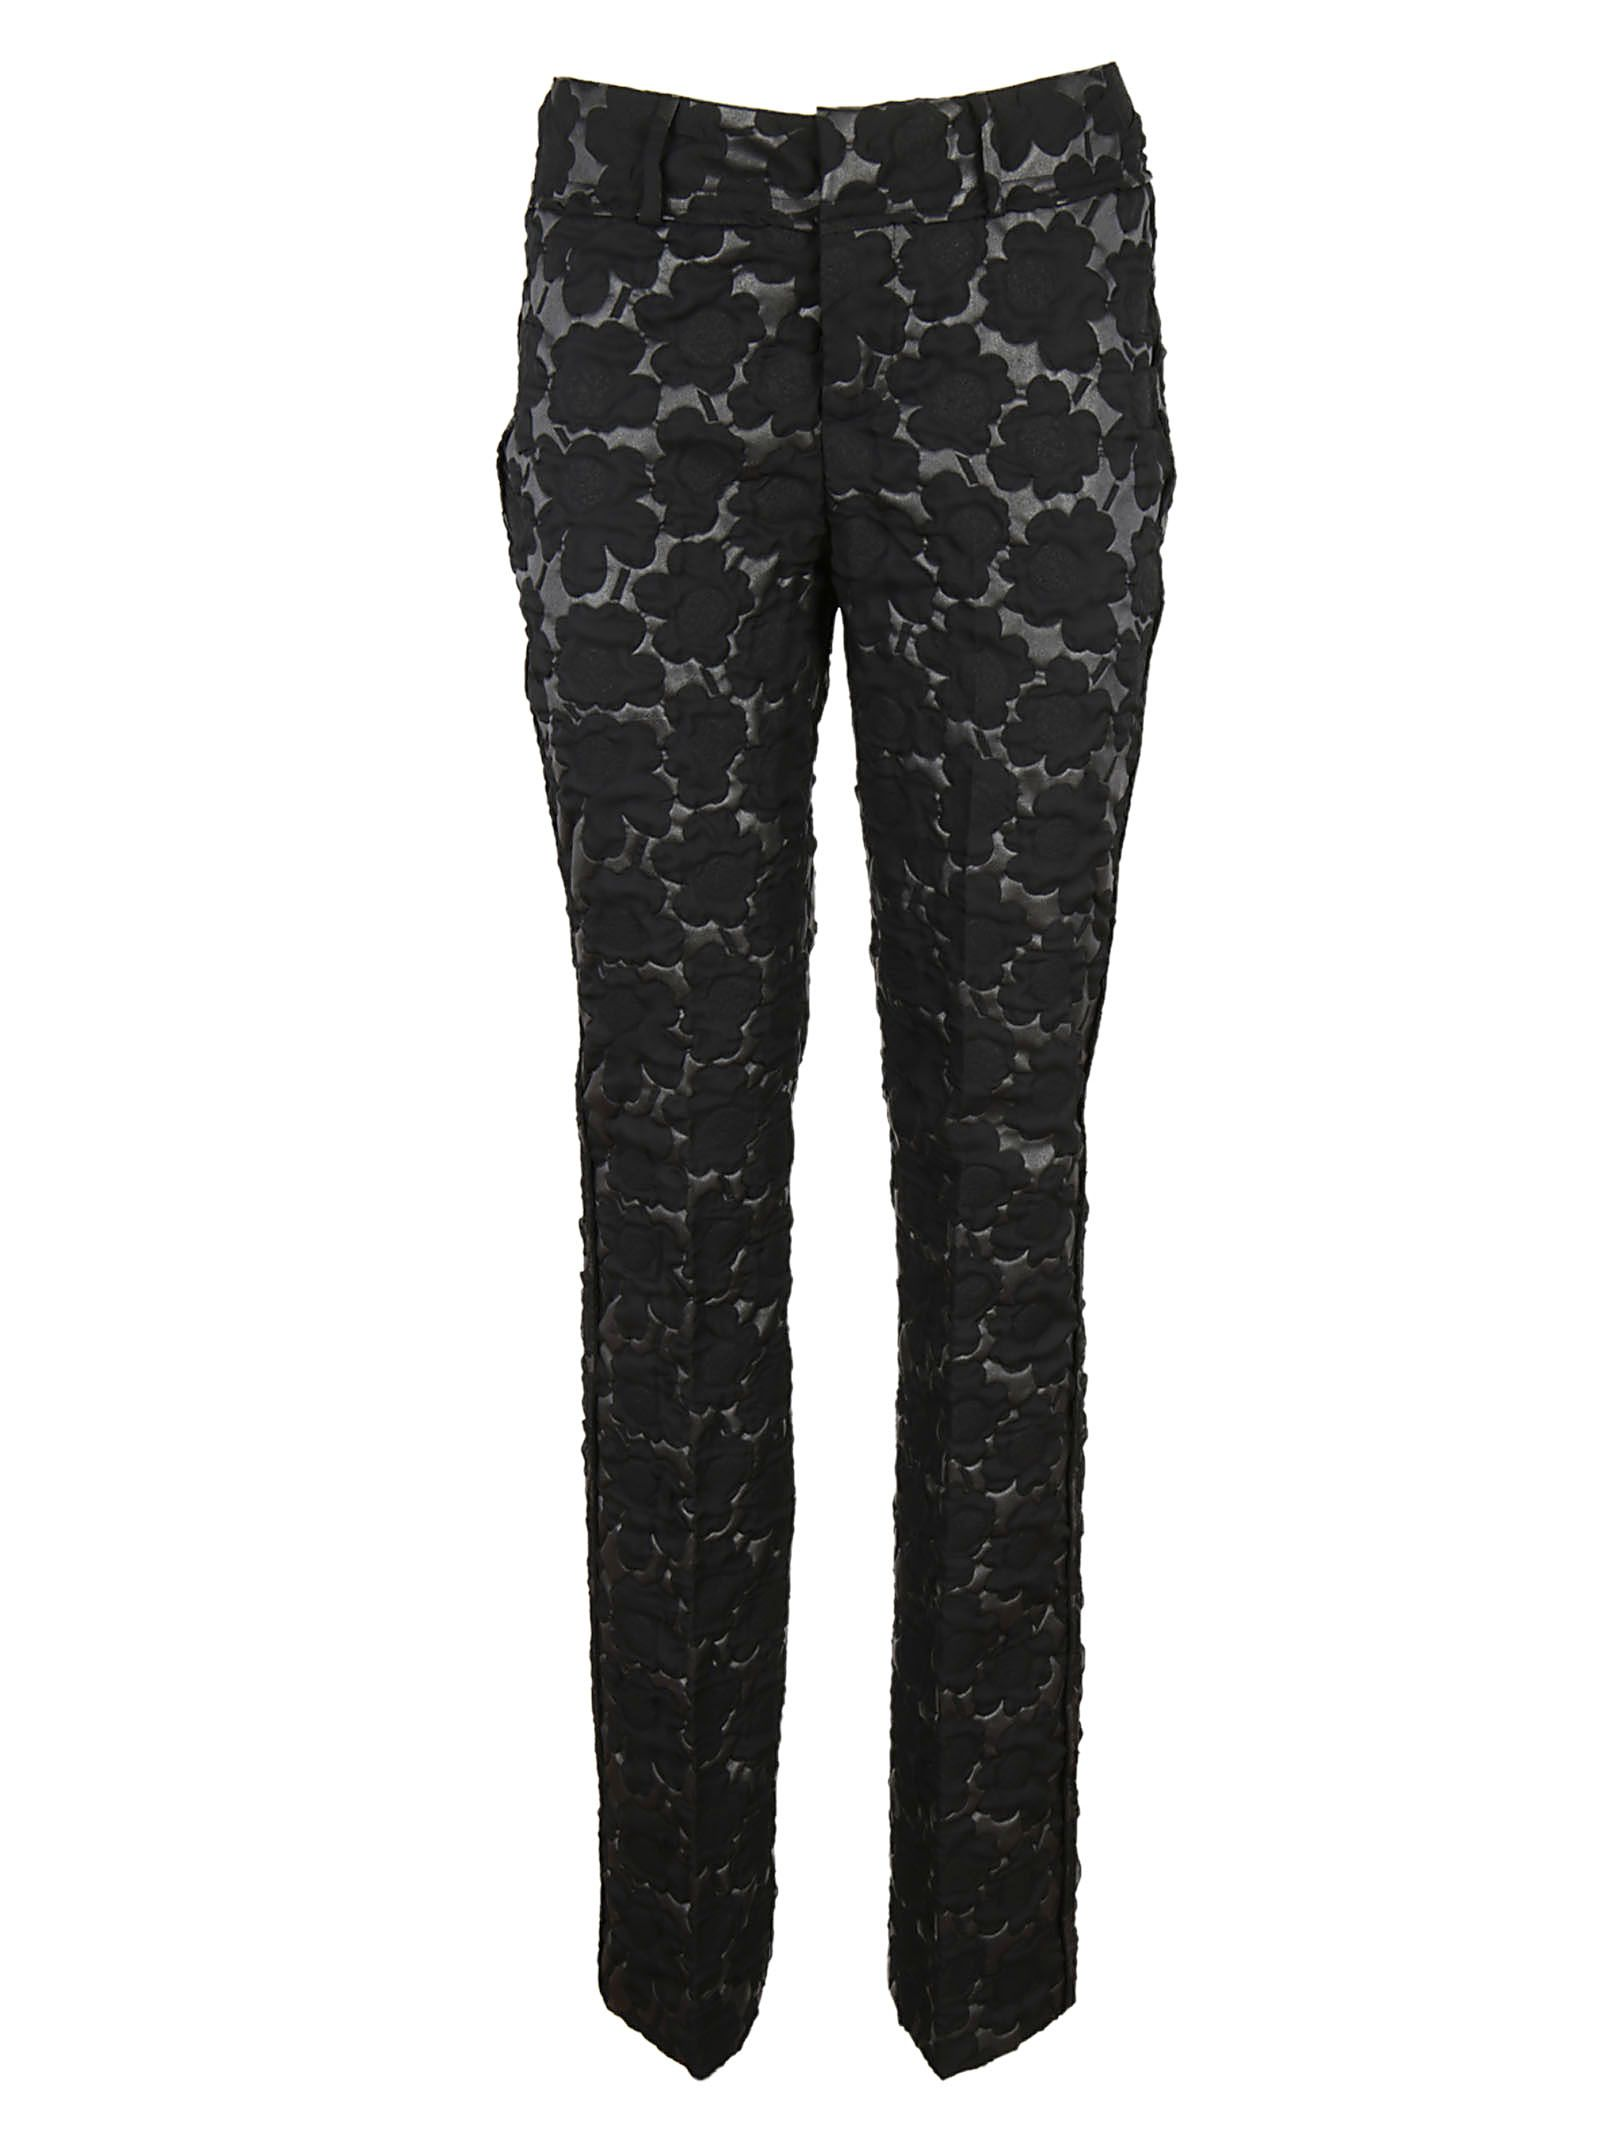 Marni - Marni Floral Quilted Trousers - Black, Women's Trousers ... : quilted trousers - Adamdwight.com